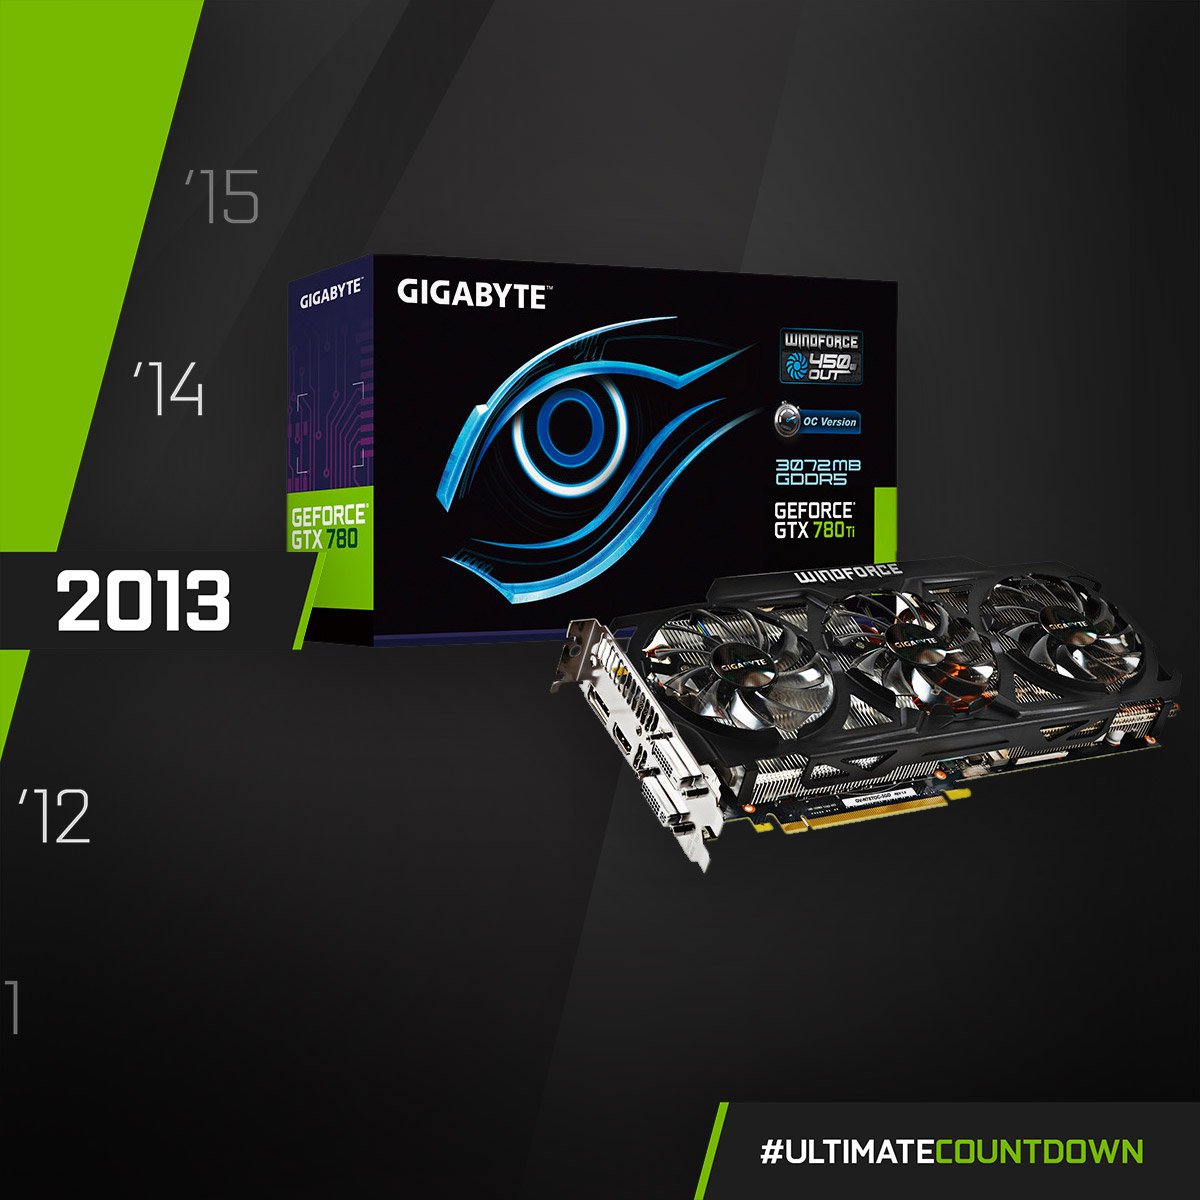 NVIDIA GeForce GTX 780 Ti - 2013  Equipped with the compelling WINDFORCE 450W cooling design, we could efficiently dissipate the 450 watt heat output from the GTX 780 Ti!  #UltimateCountdown #UltimateAORUS #GIGABYTE https://t.co/CcA4vkWdII